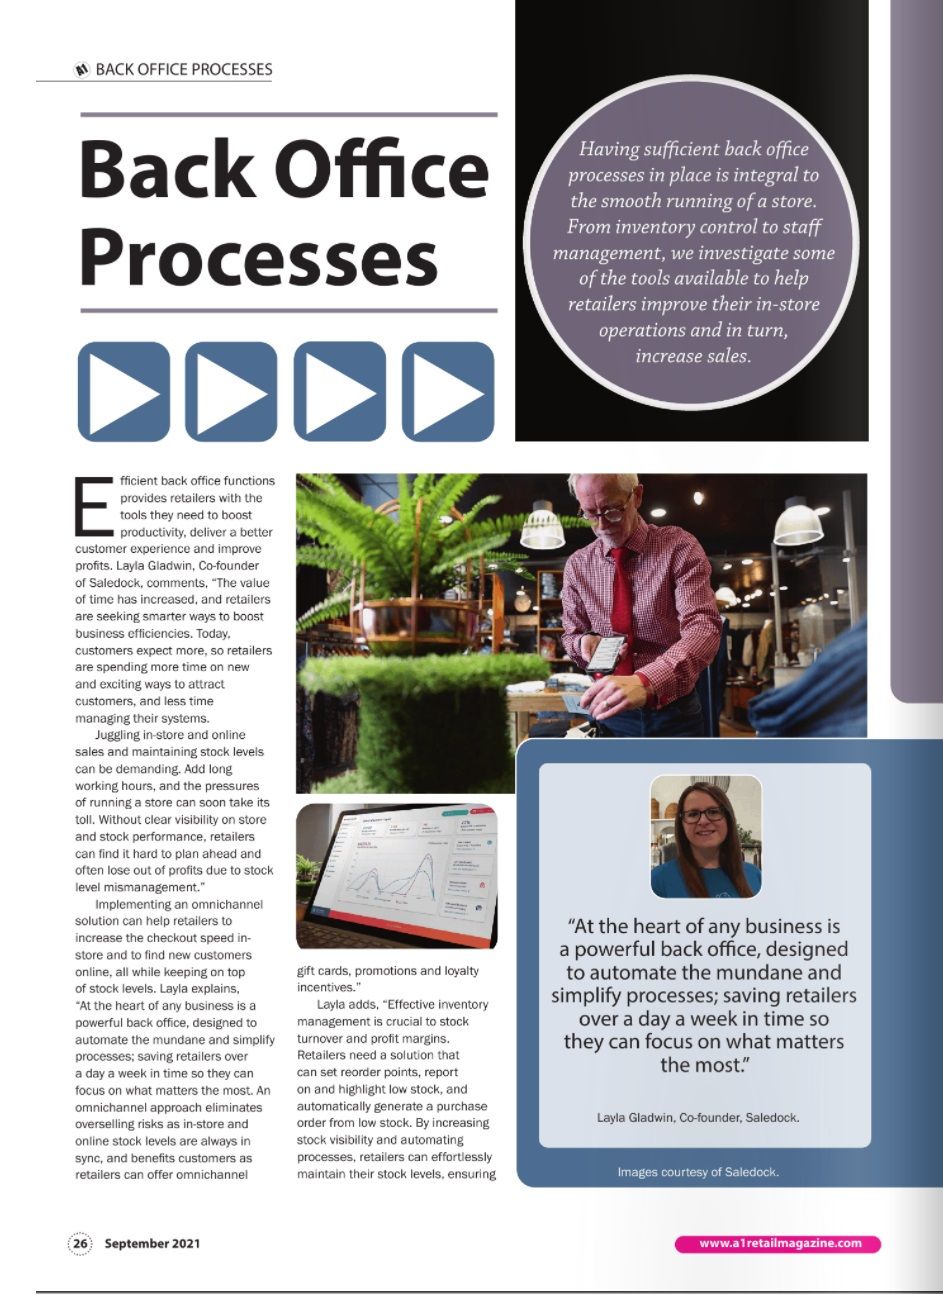 Saledock features in the A1 Retail Magazine September 2021